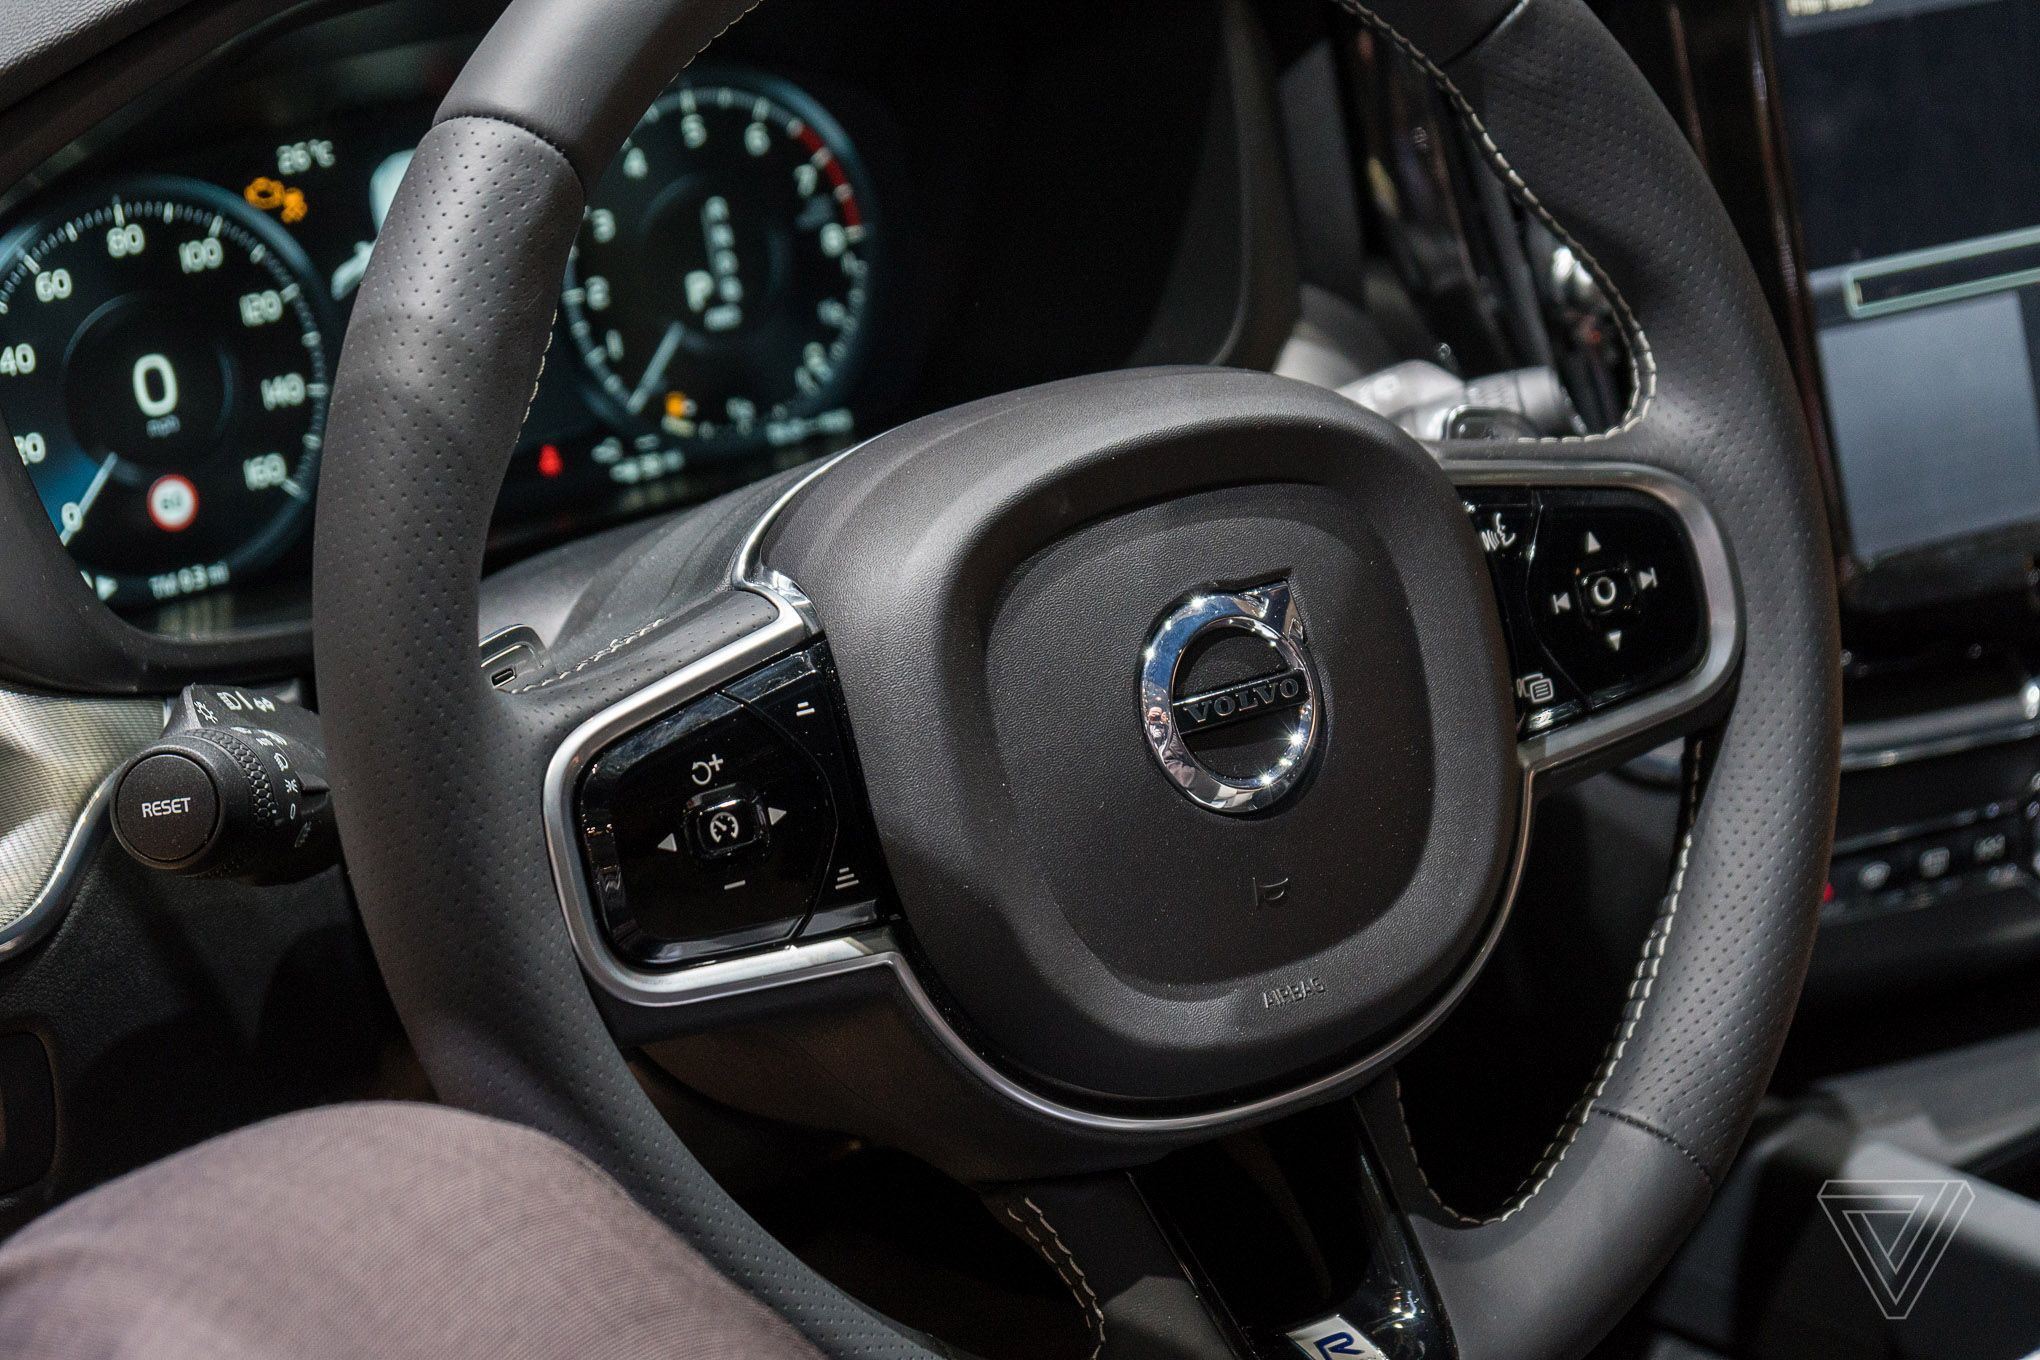 Behold the elegant simplicity of the volvo xc60 the verge for Interieur xc60